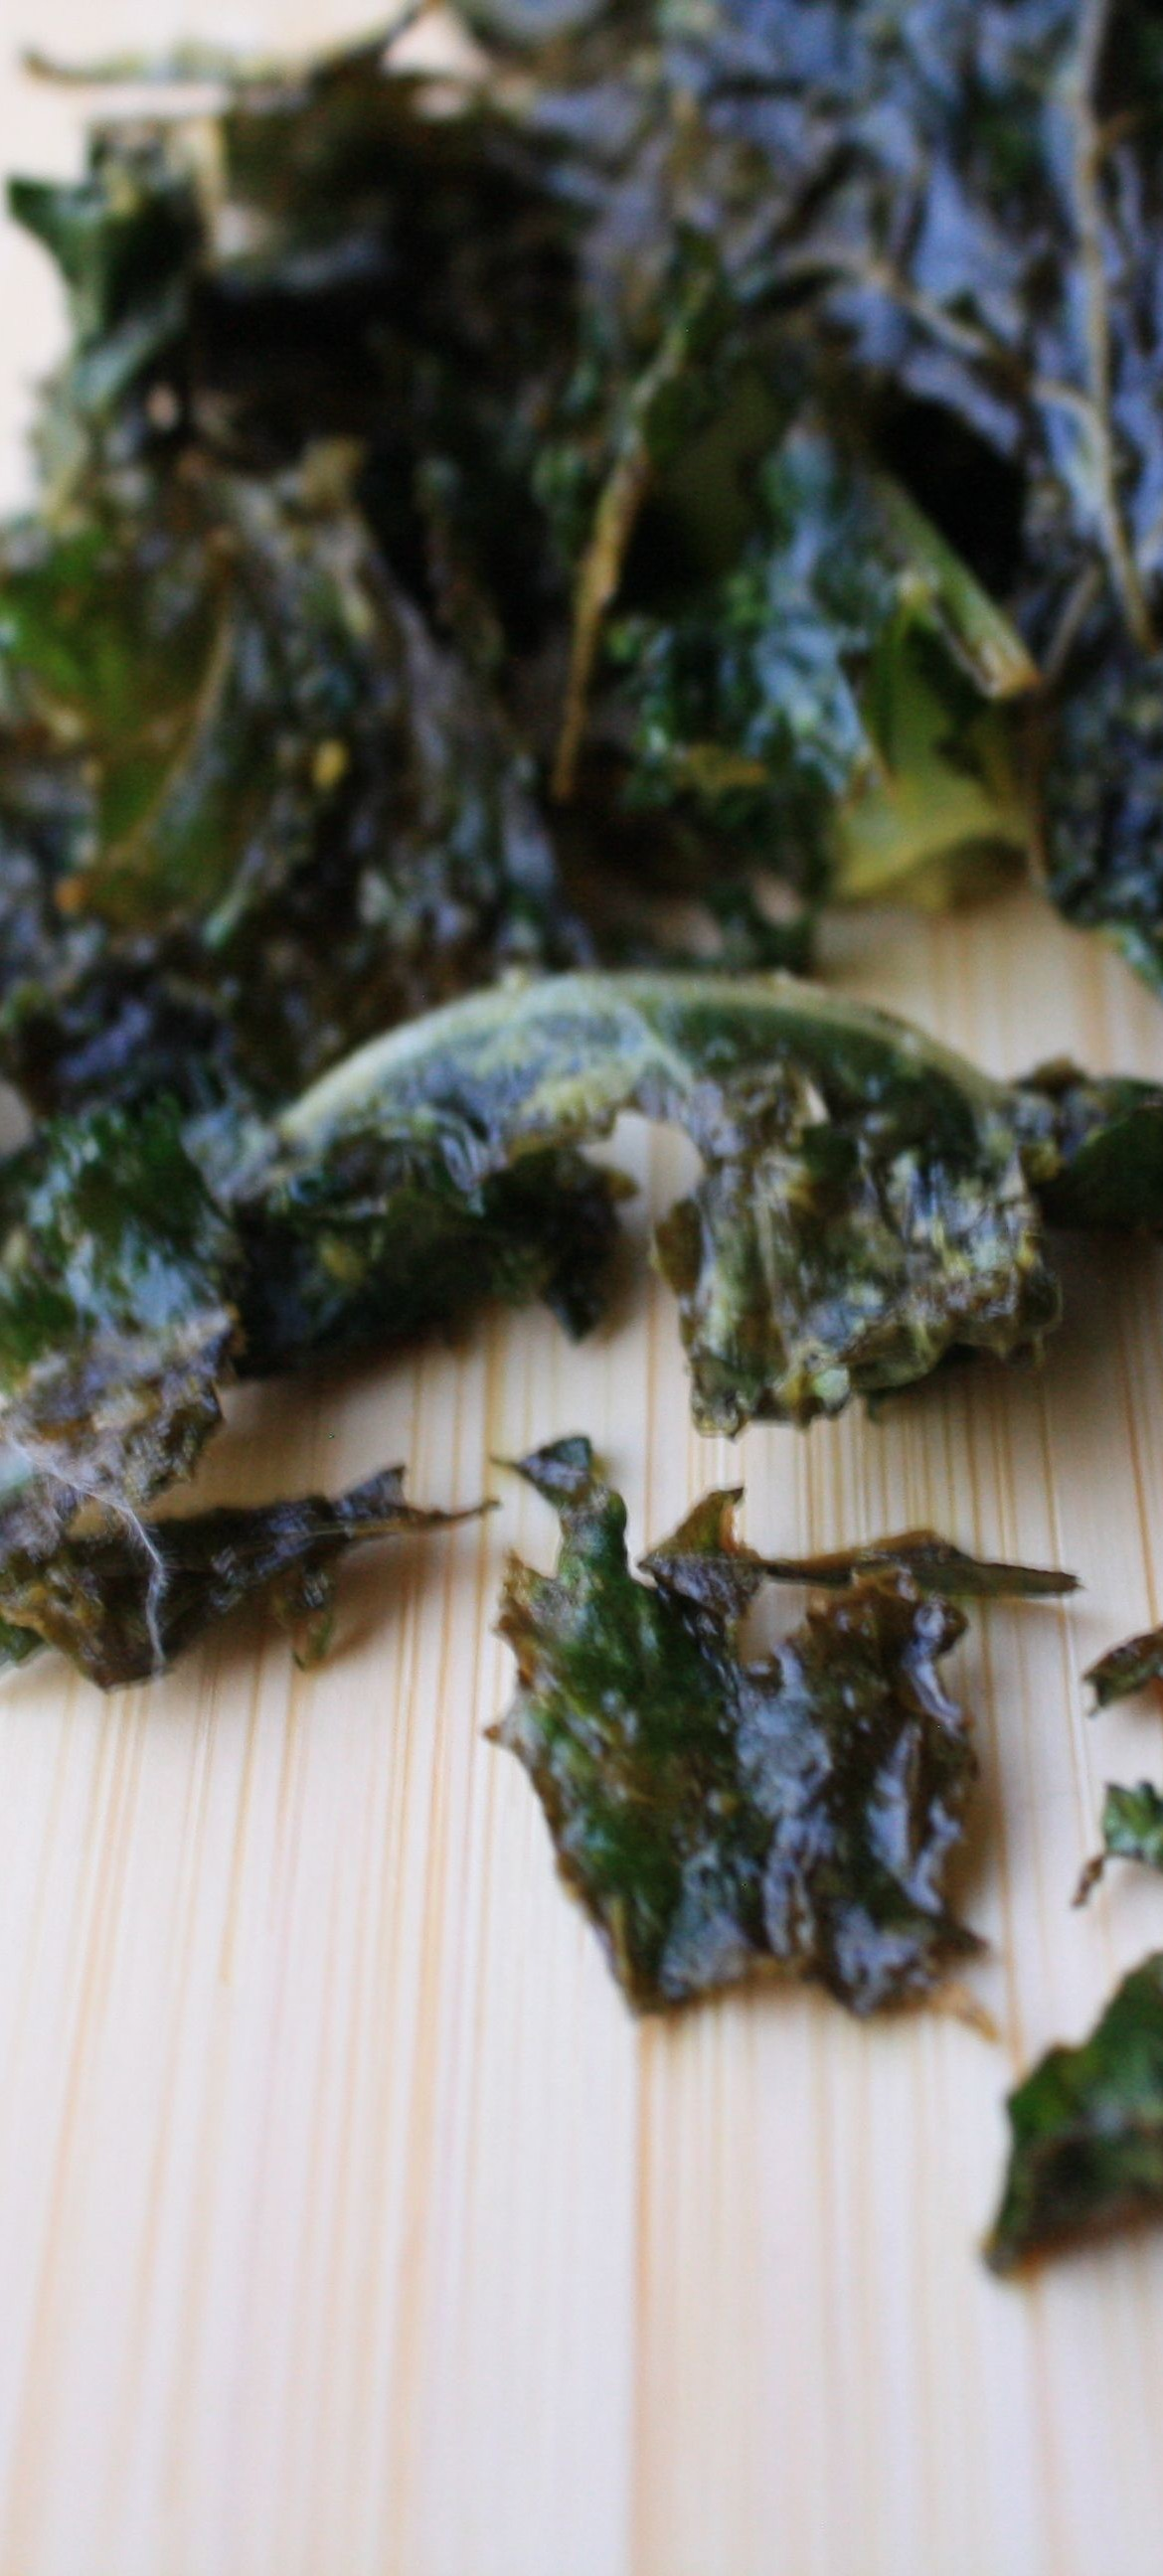 SIDE DISH RECIPES- Kale Chips